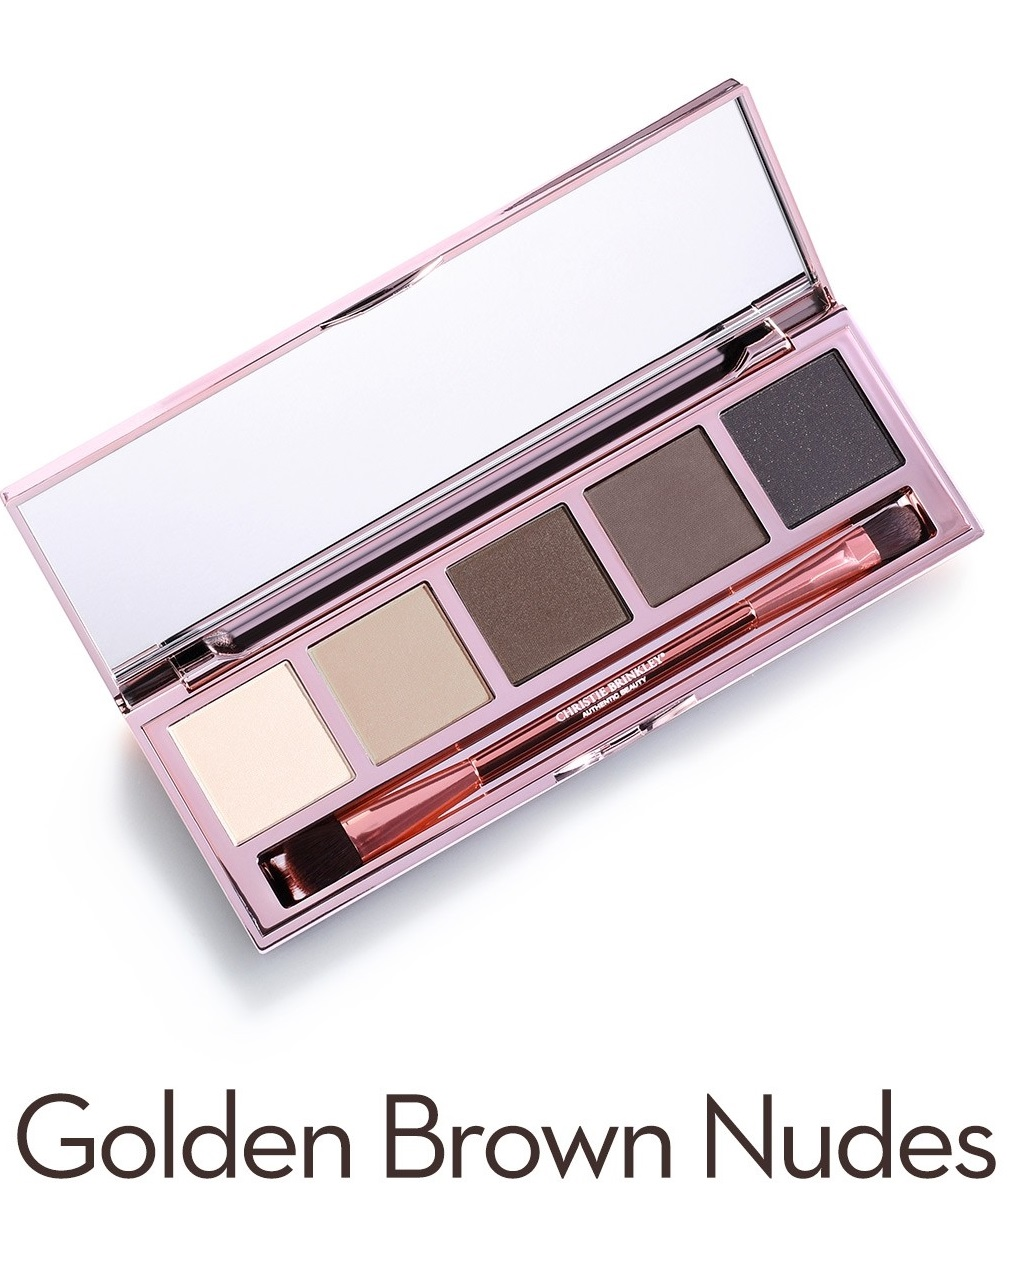 df4540cd1be This palette contains a curated collection of perfectly-balanced color  professionally developed to deliver easy elegant day-to-dazzling evening  looks.